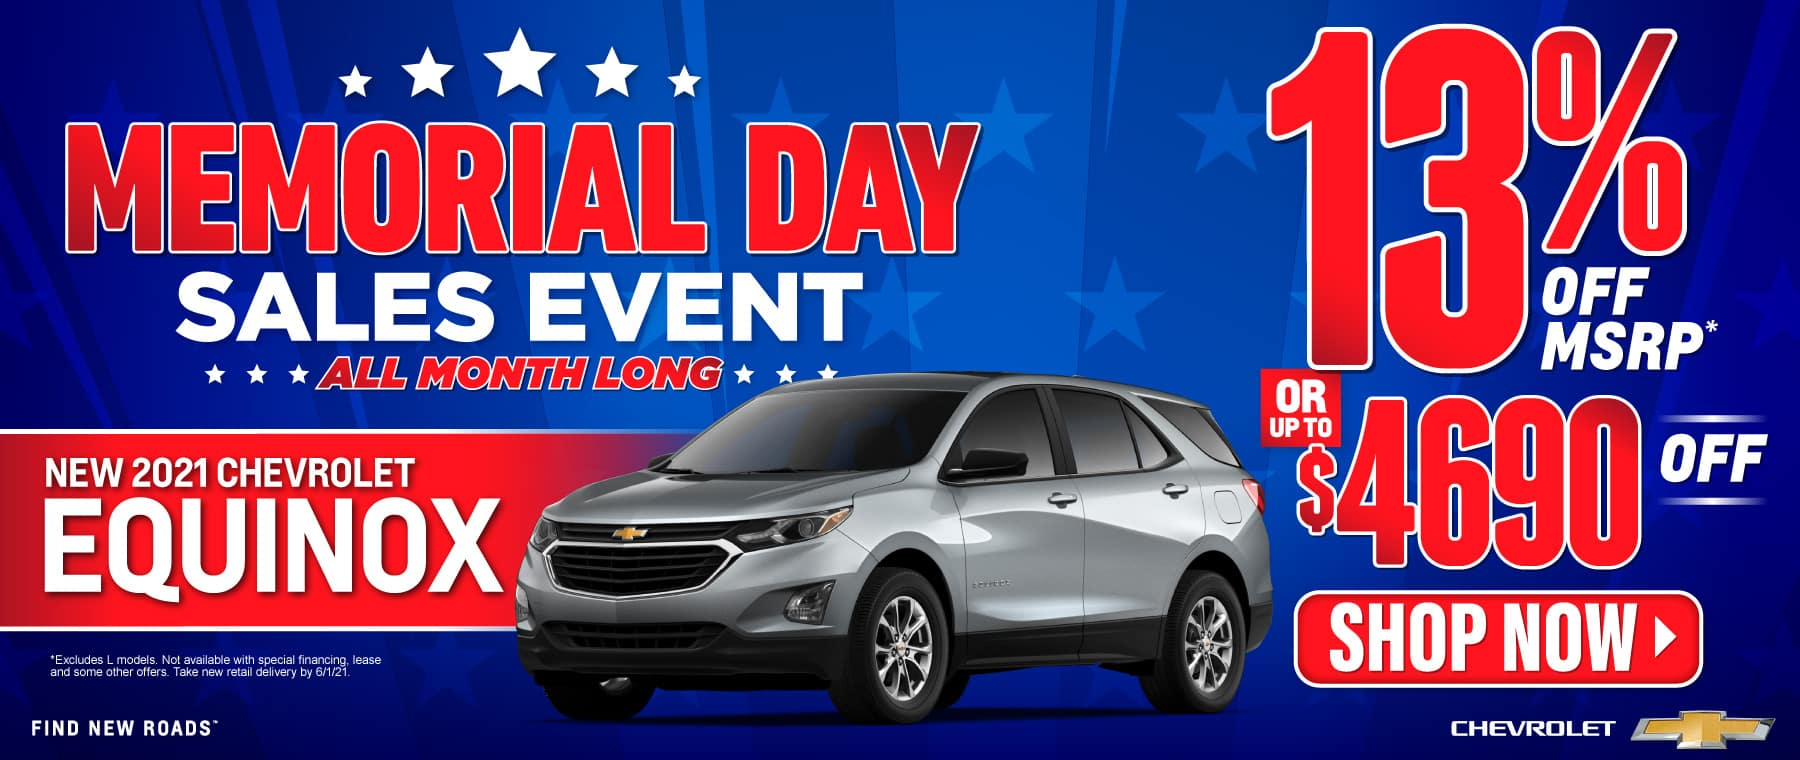 New 2021 Chevy Equinox - 13% off msrp - Act Now